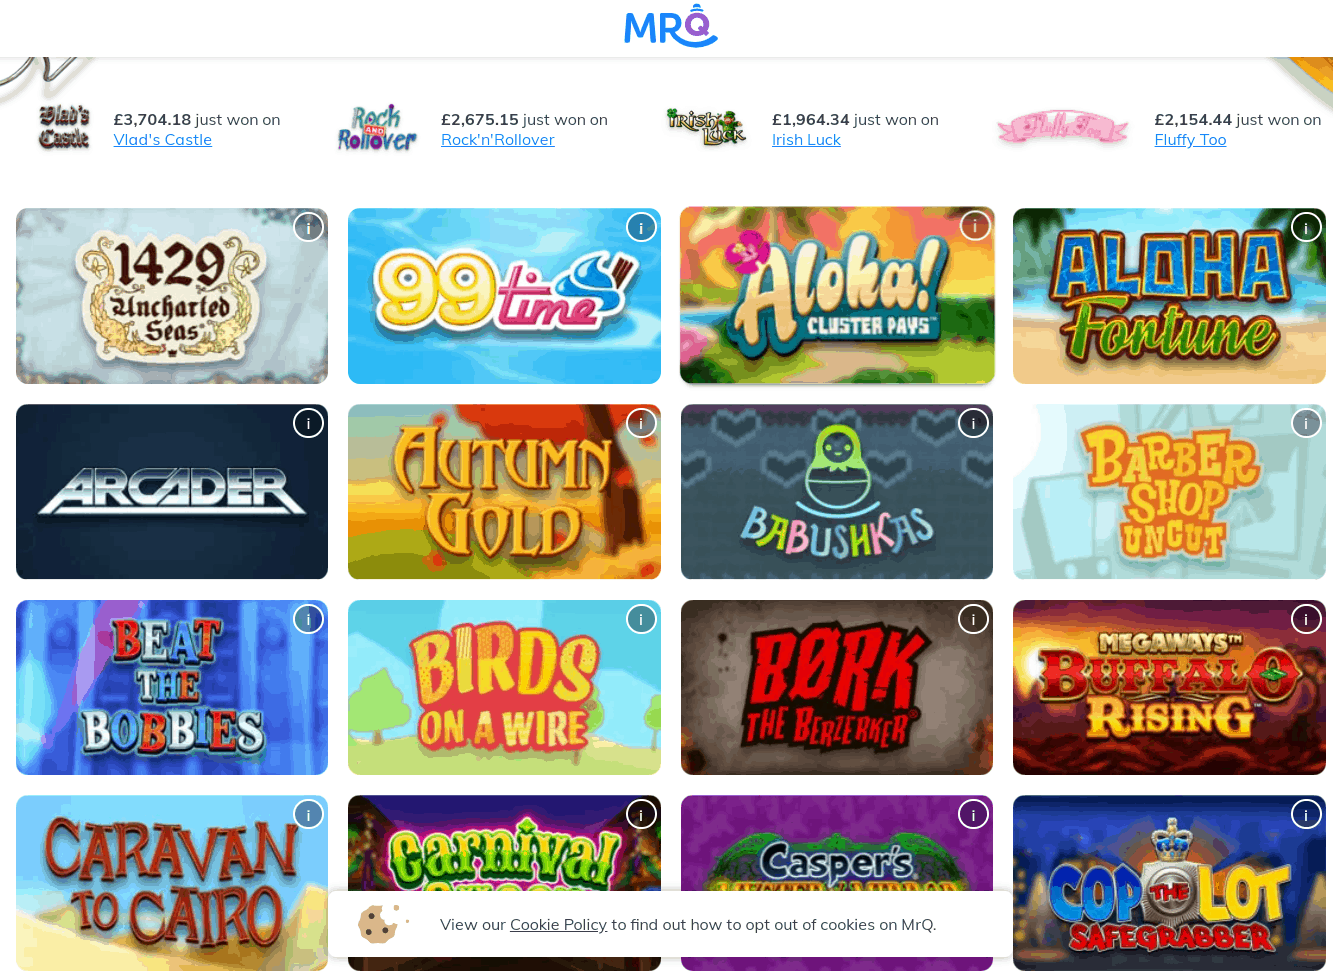 mrq games page